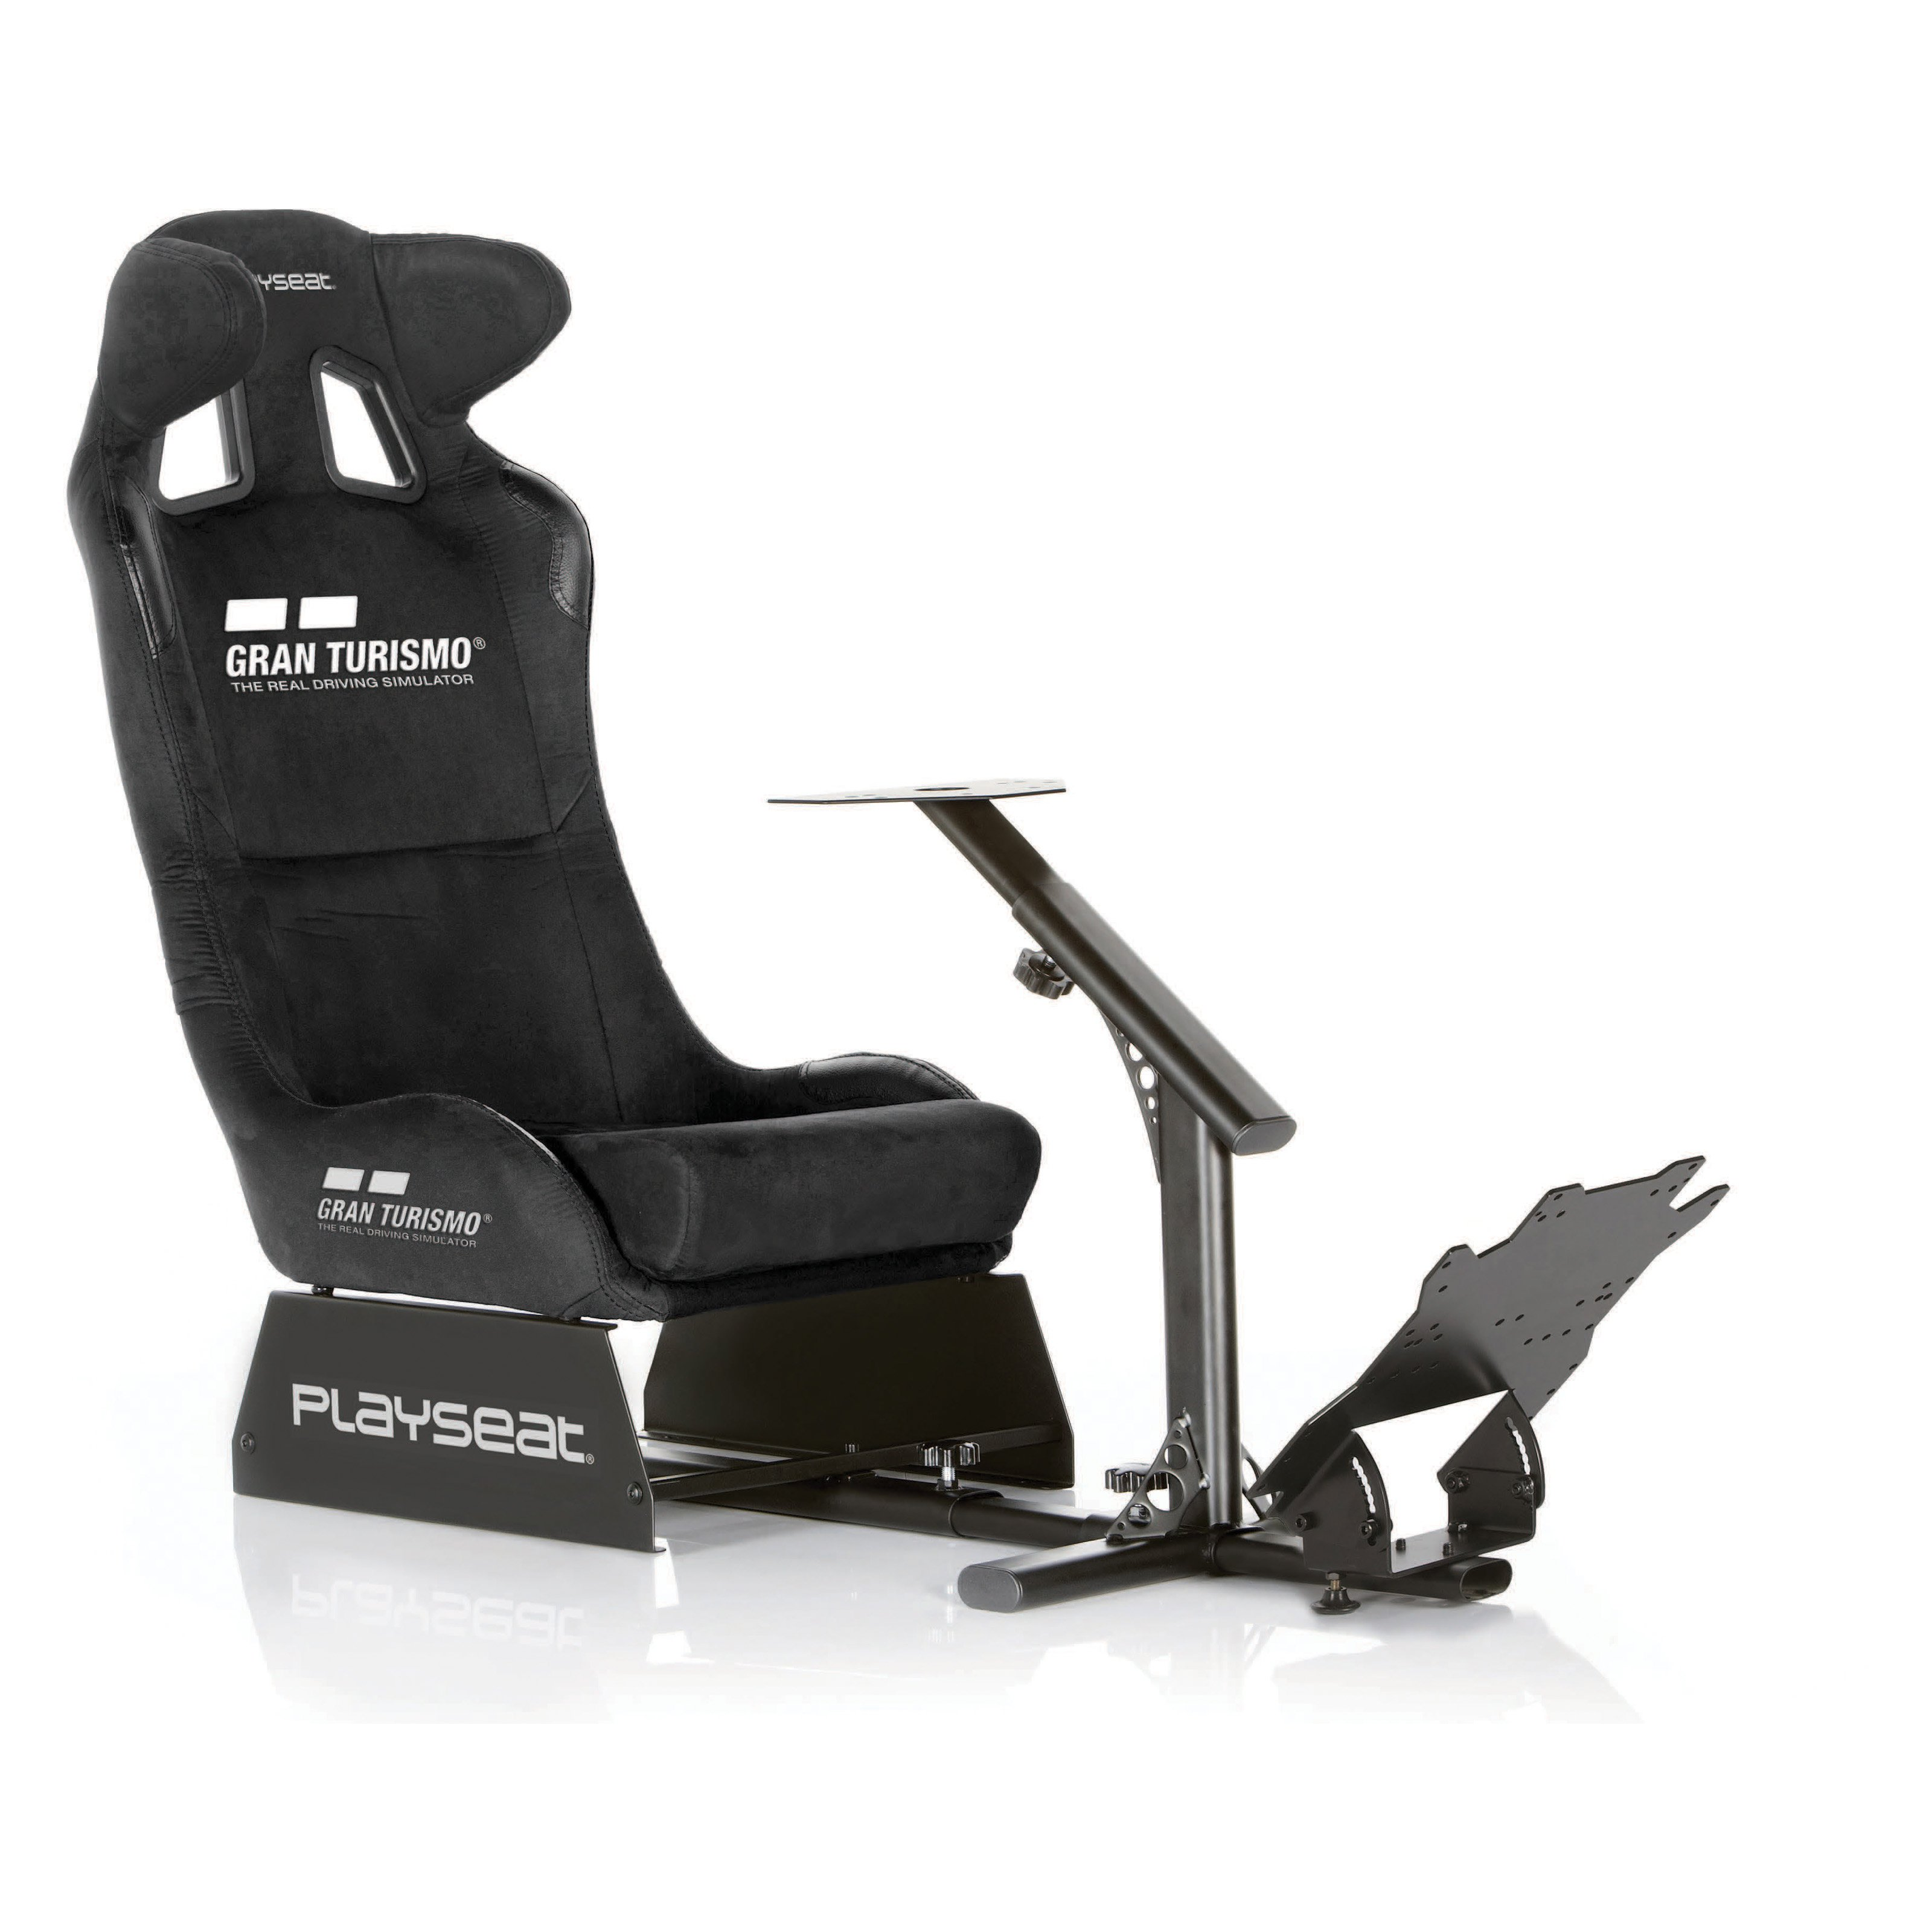 Playseat Evolution Gran Turismo Gaming Chair